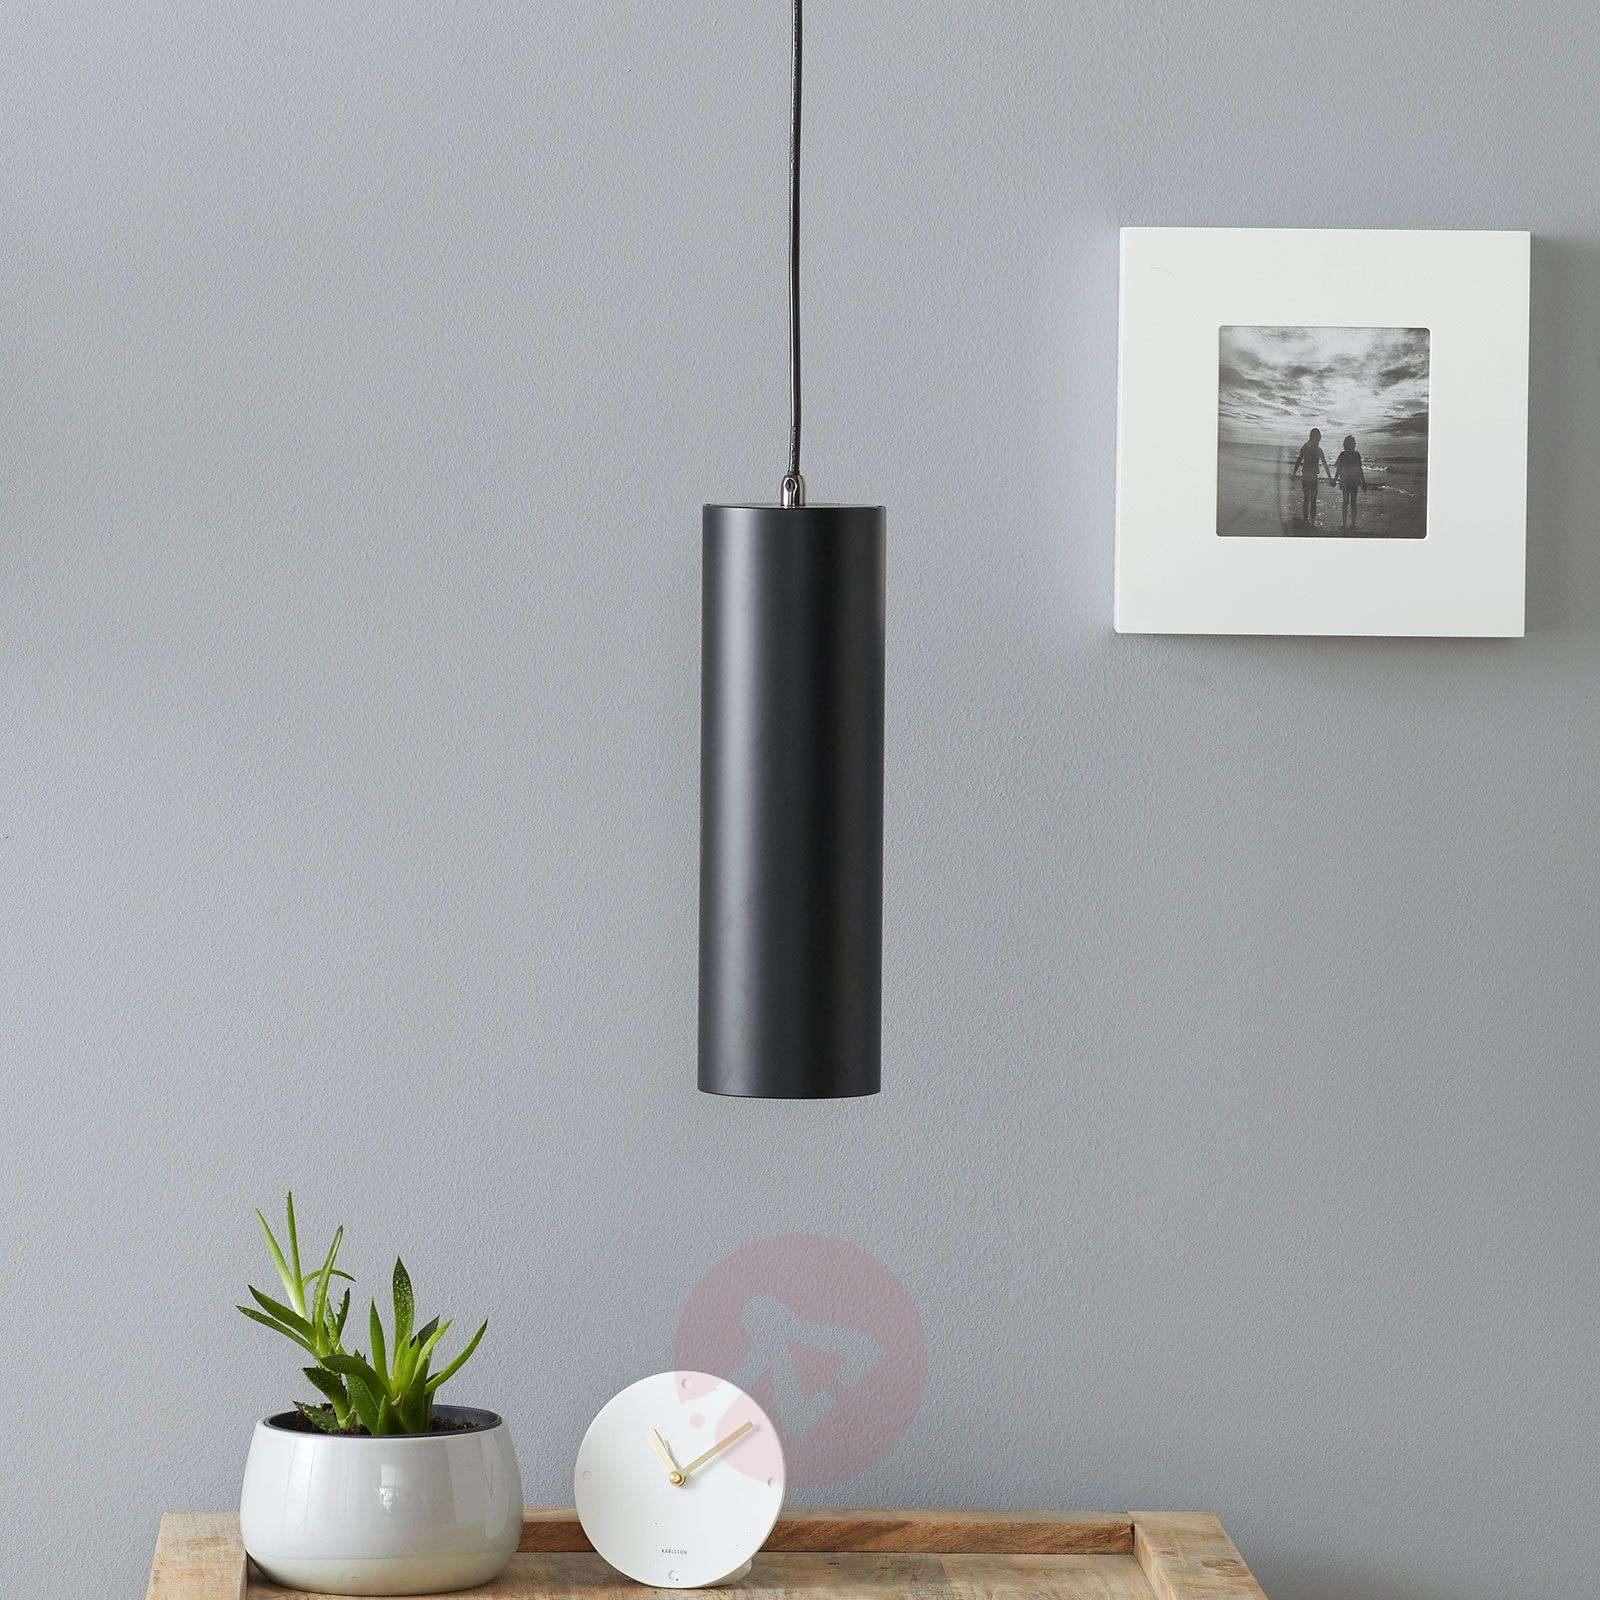 kikke shop pendant boost black hebbe lamp wood crowdyhouse recht zwart voor ink on